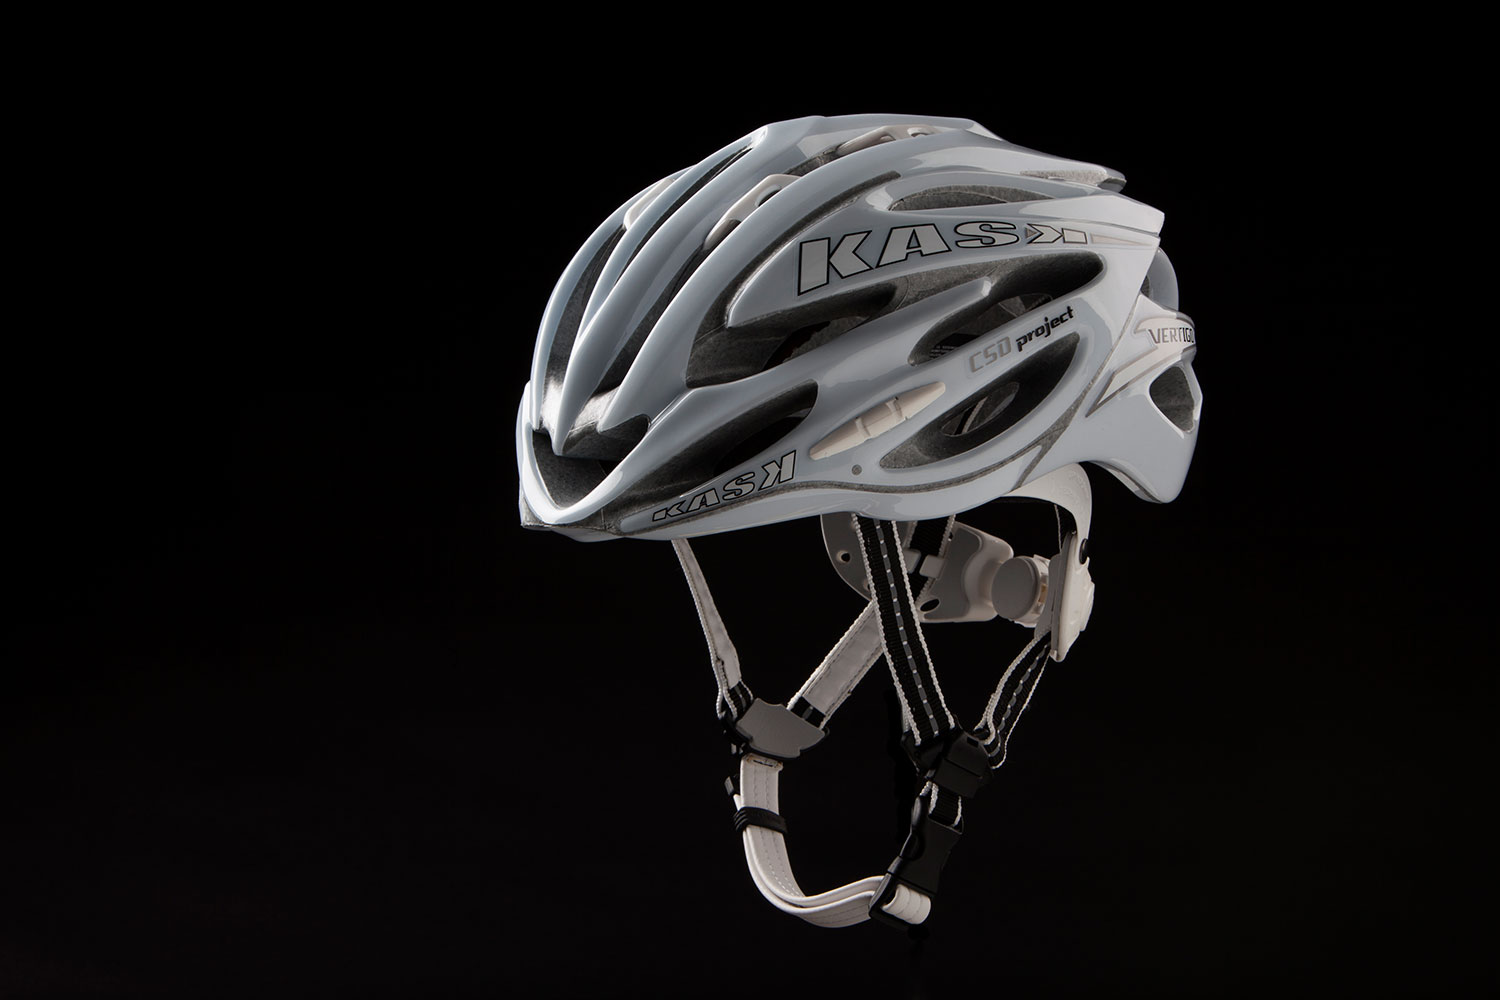 bicycle-helmet-shot-in-photographic-studio